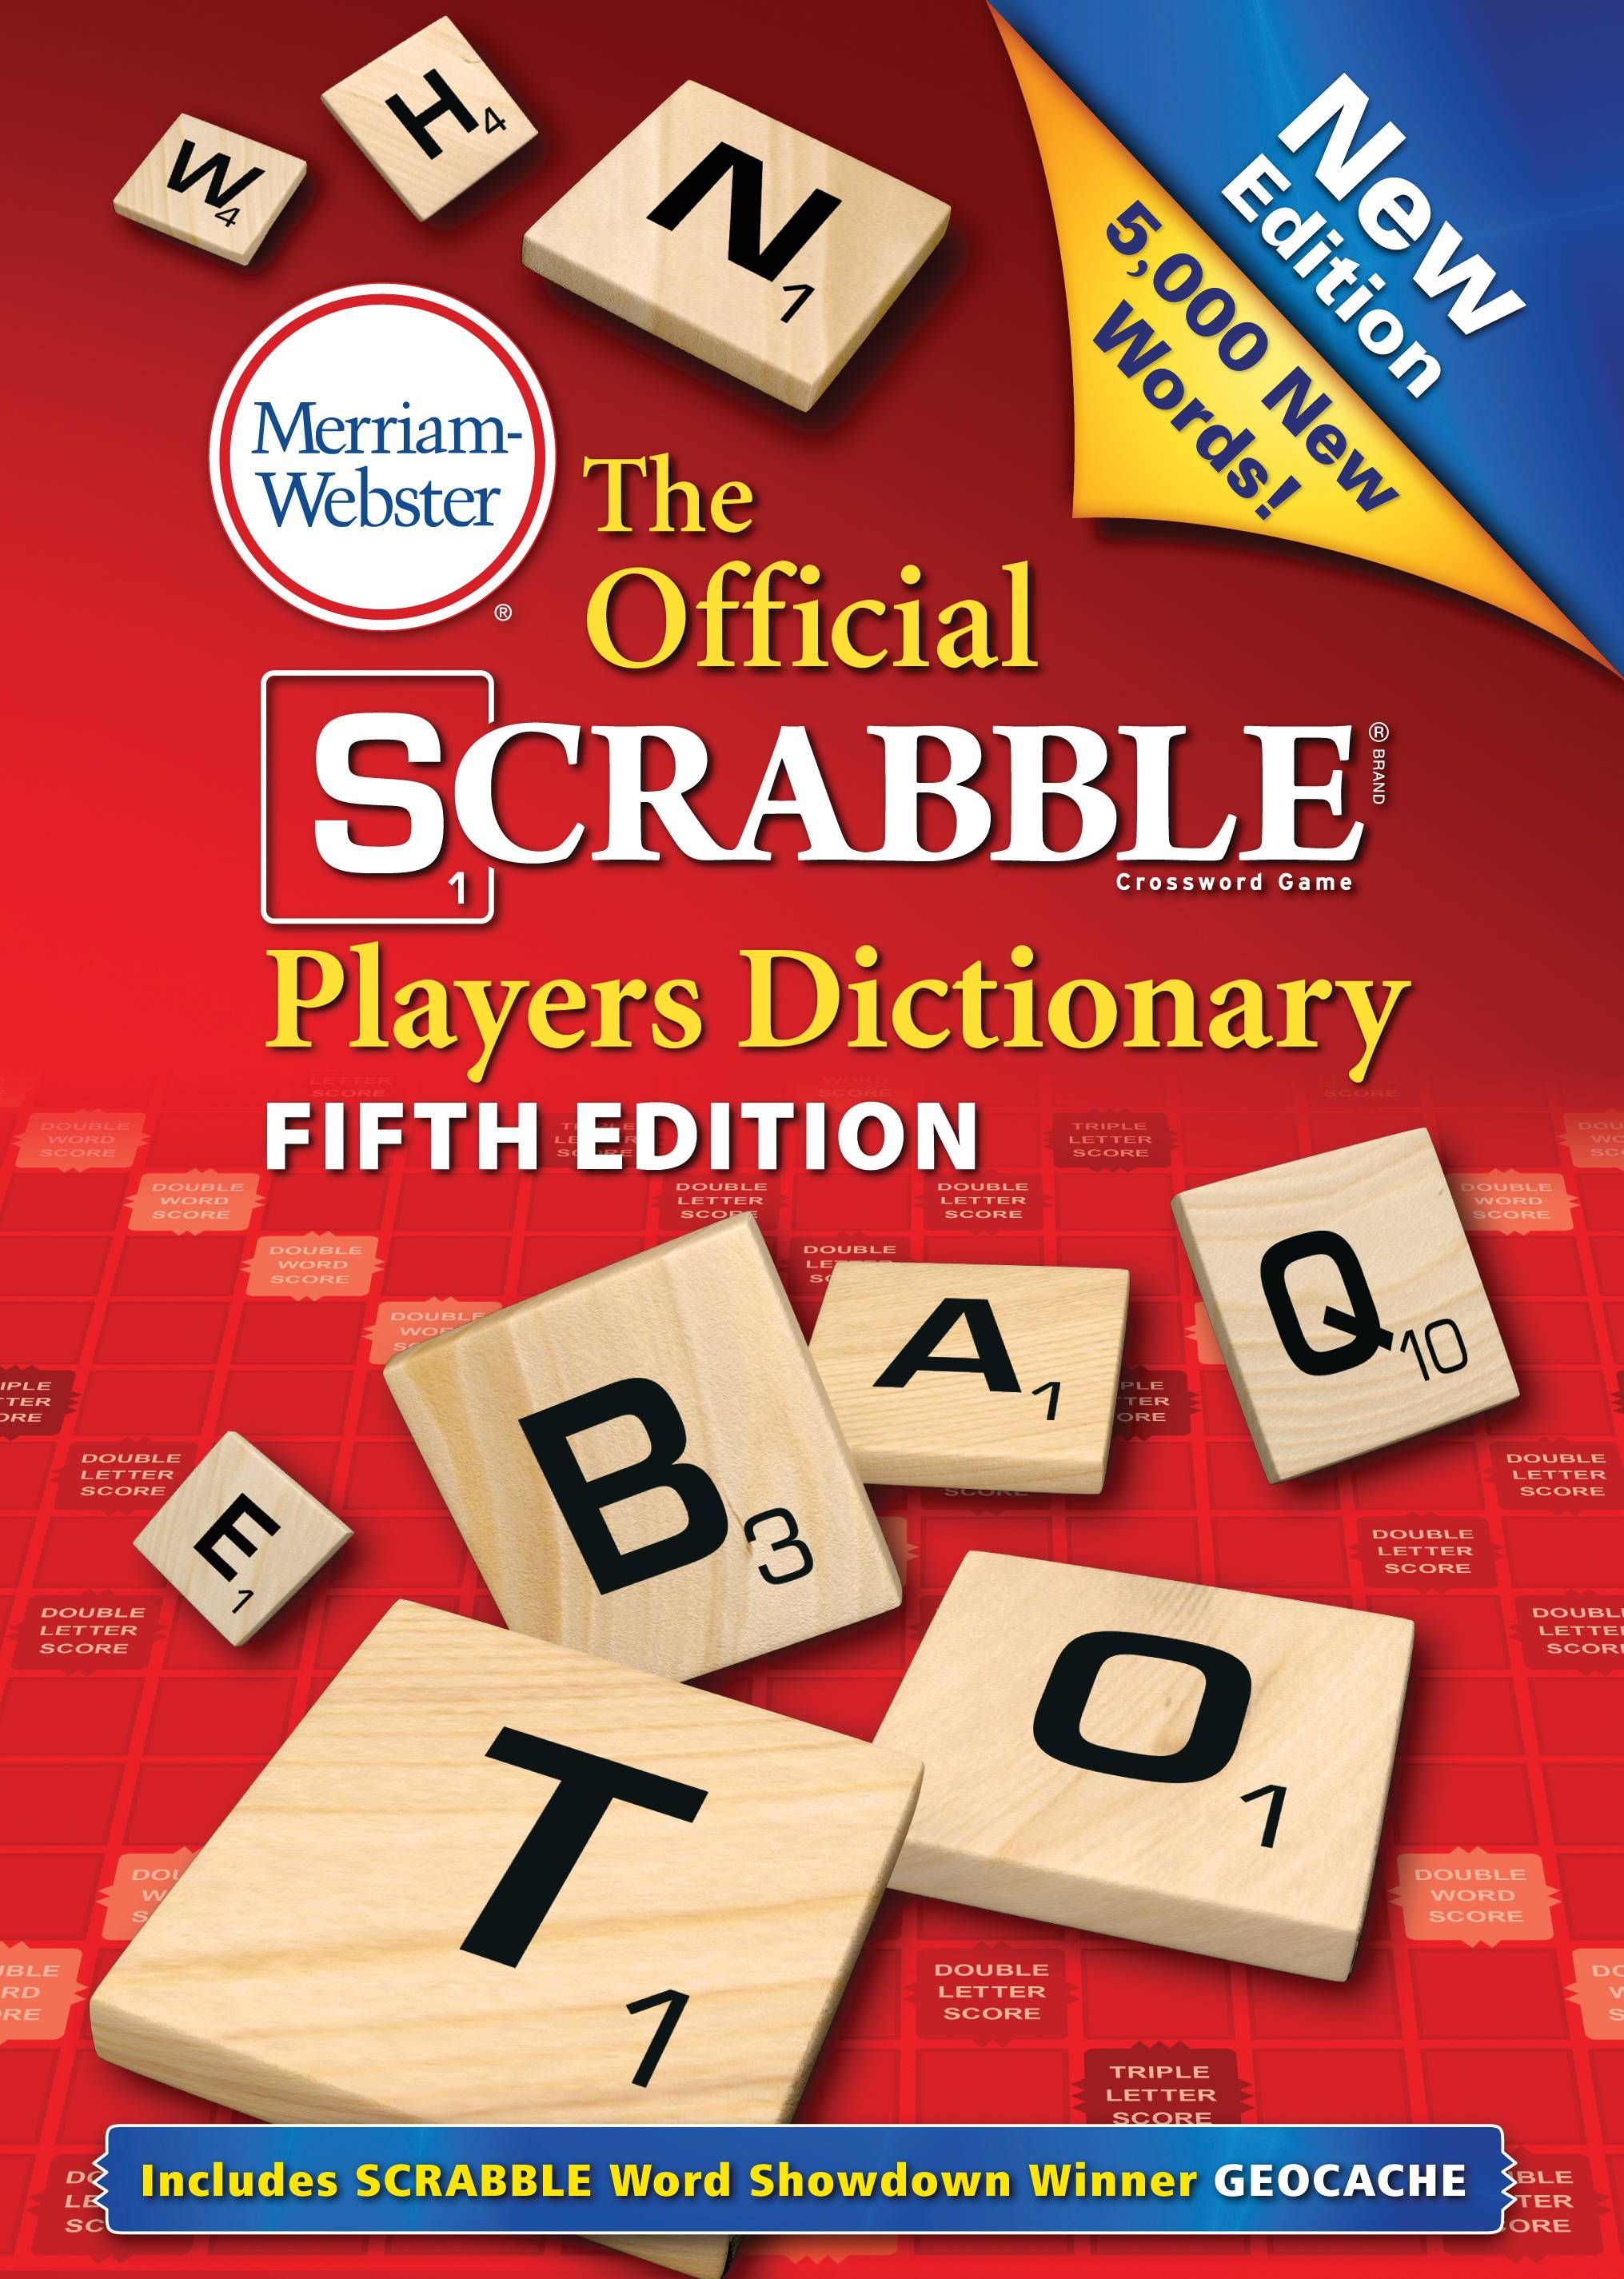 """The Official Scrabble Players Dictionary: Fifth Edition,"" out next Monday, has 5,000 new words."